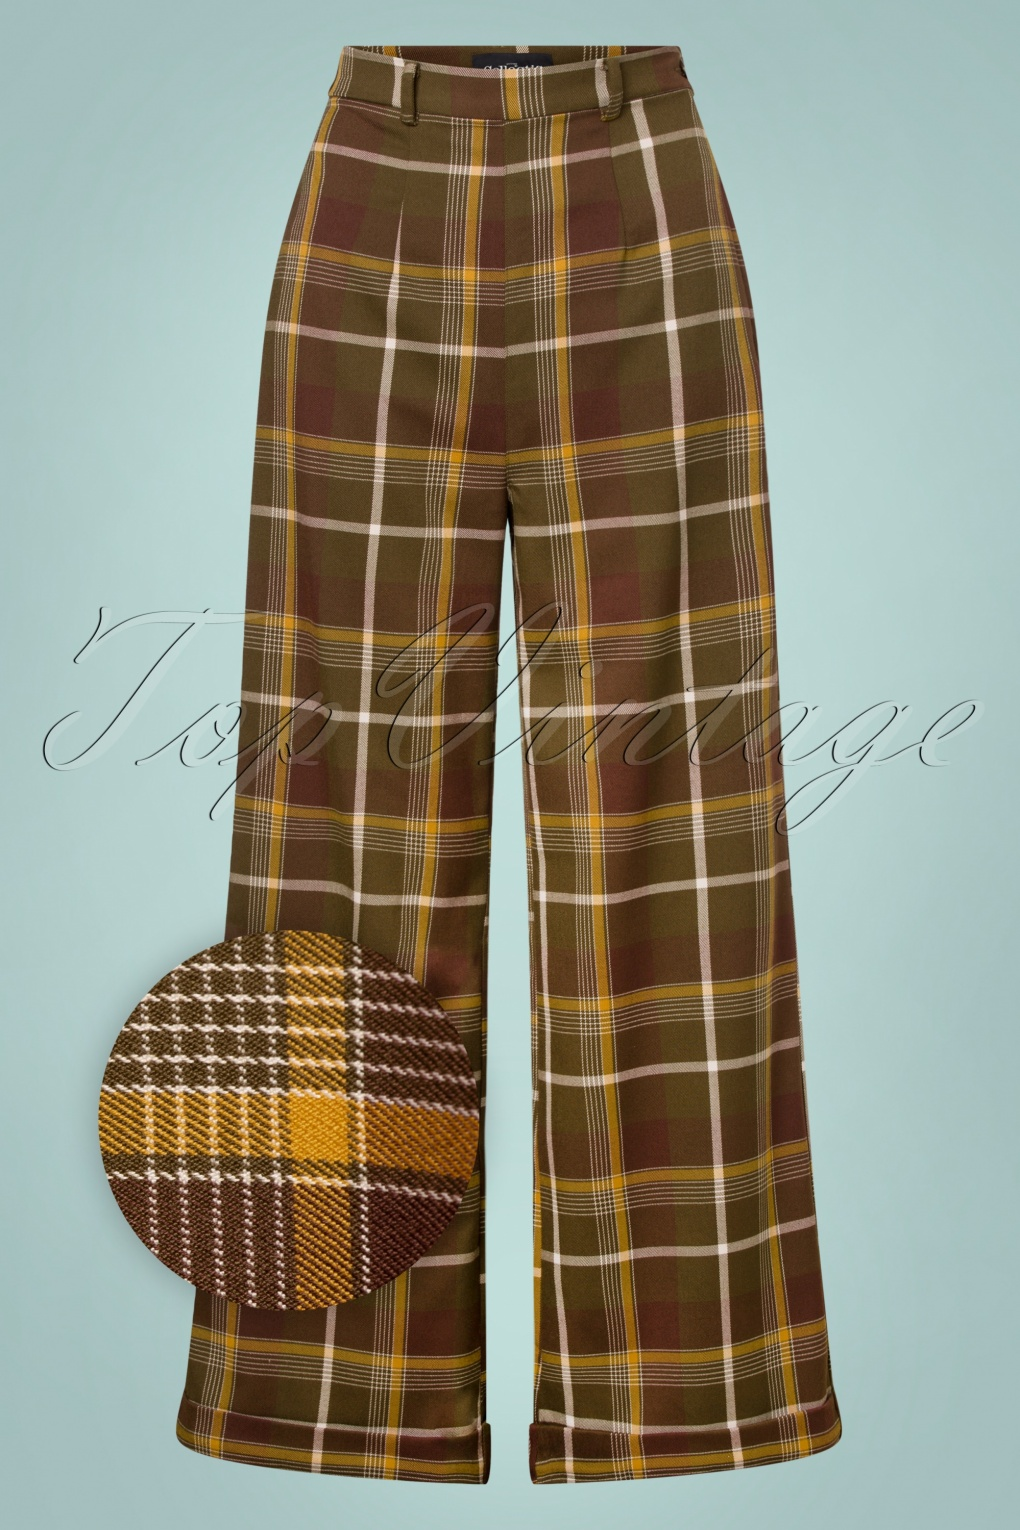 1940s Dresses and Clothing UK | 40s Shoes UK 40s Baylee Mosshill Check Trousers in Brown £58.91 AT vintagedancer.com